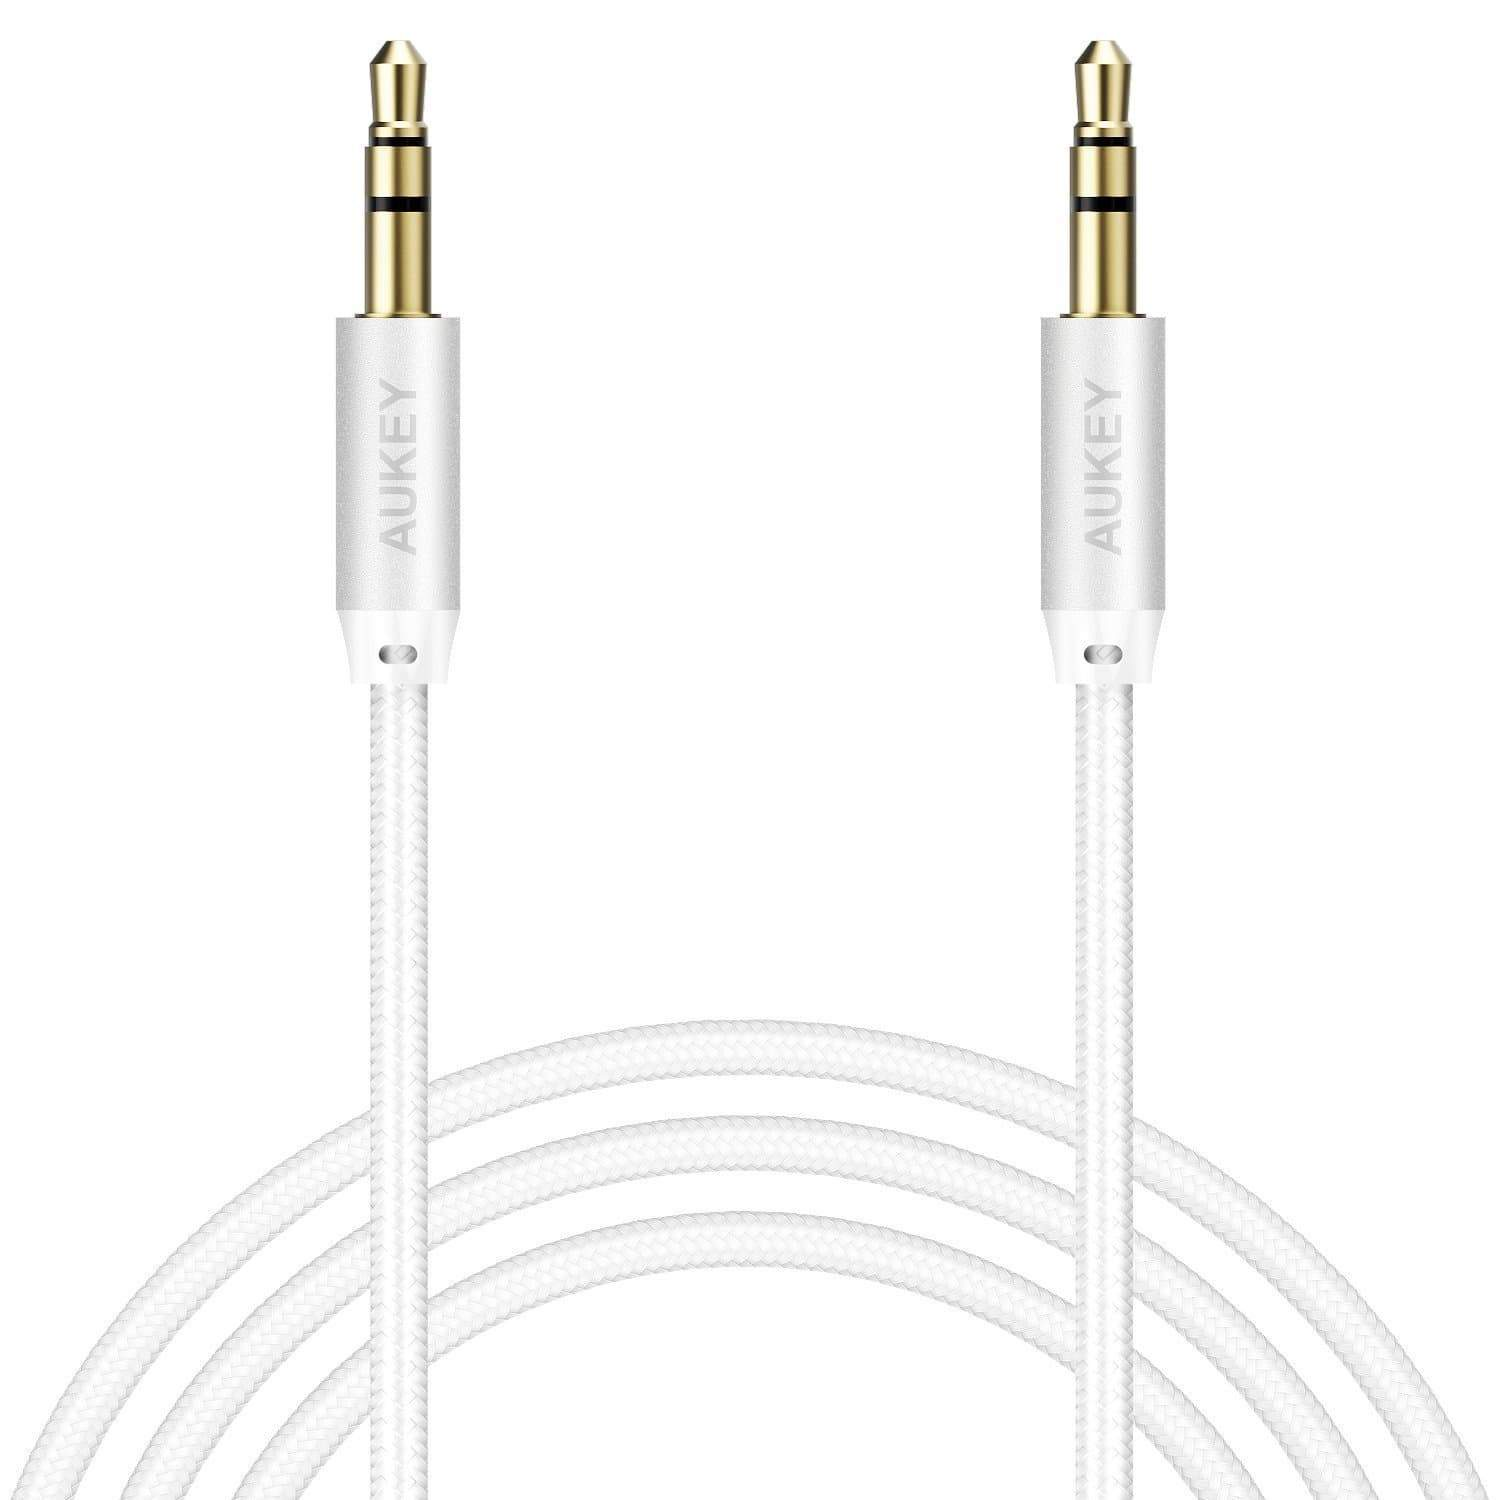 Кабель Aukey Braided Audio Cable, CB-V12, белый, 120 см